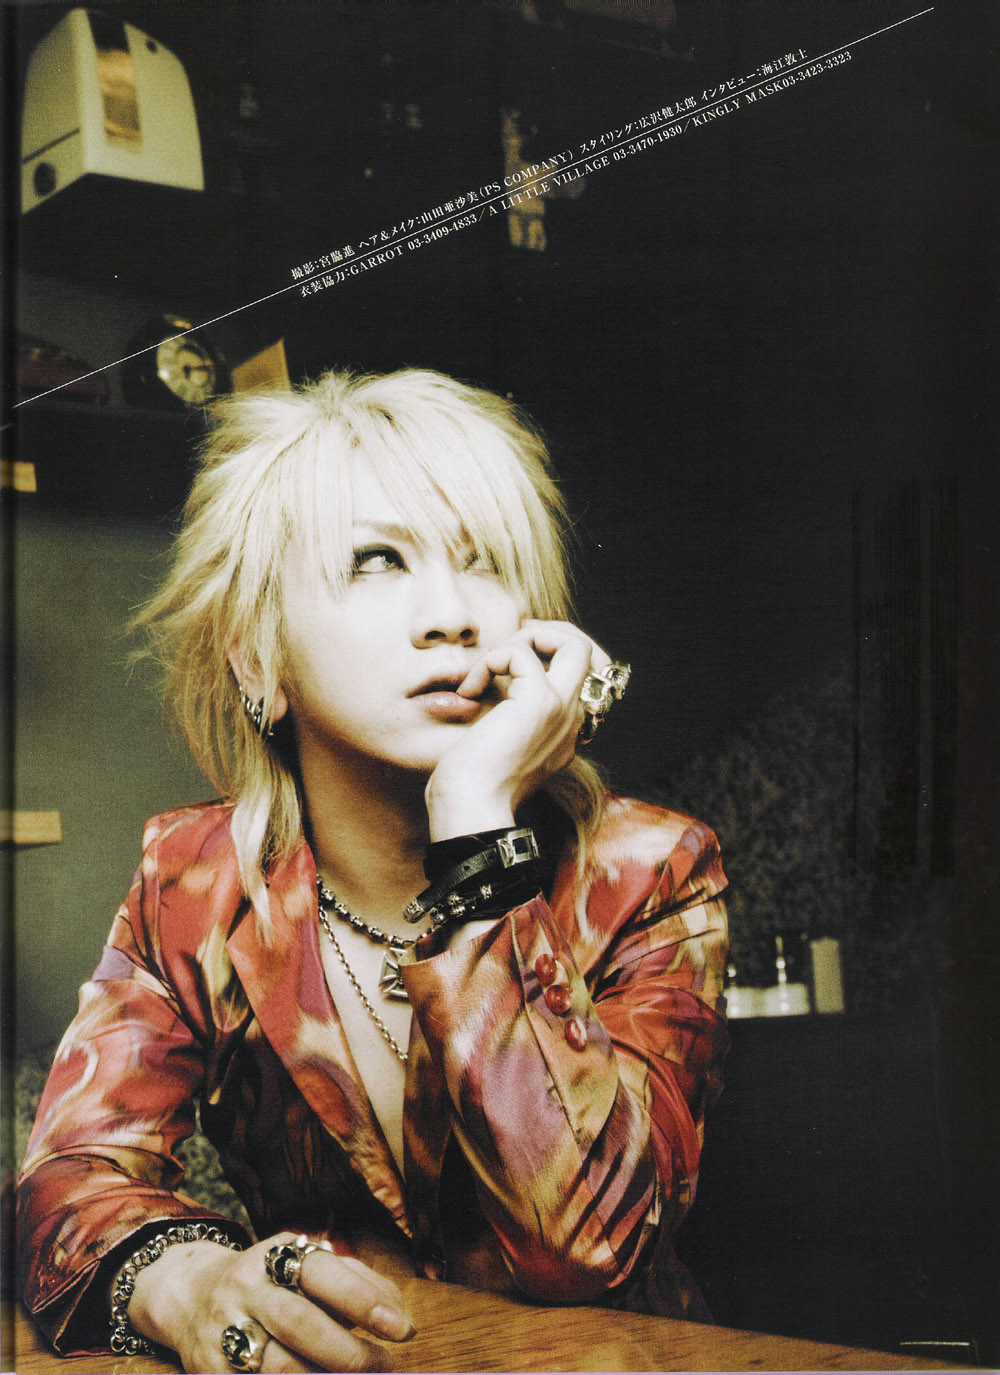 the GazettE: Ruki